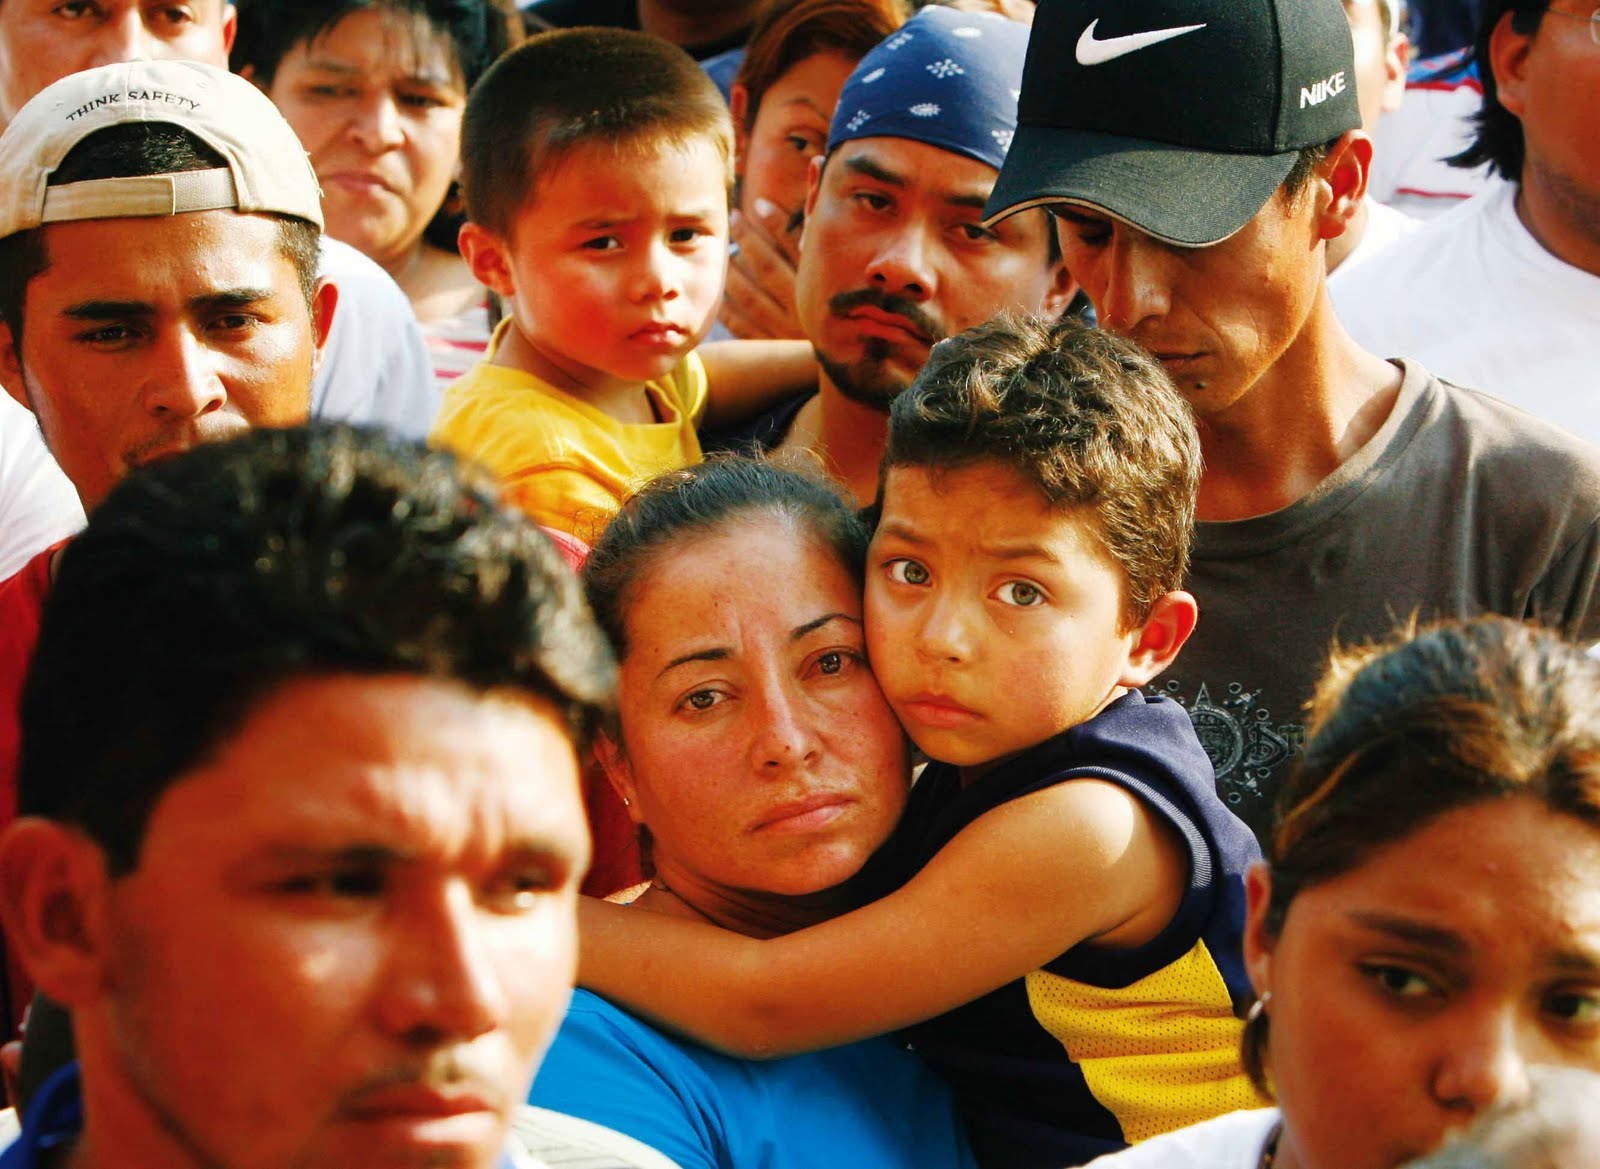 Immigration Reform >> Larry James' Urban Daily: Why I'll walk today with my immigrant friends